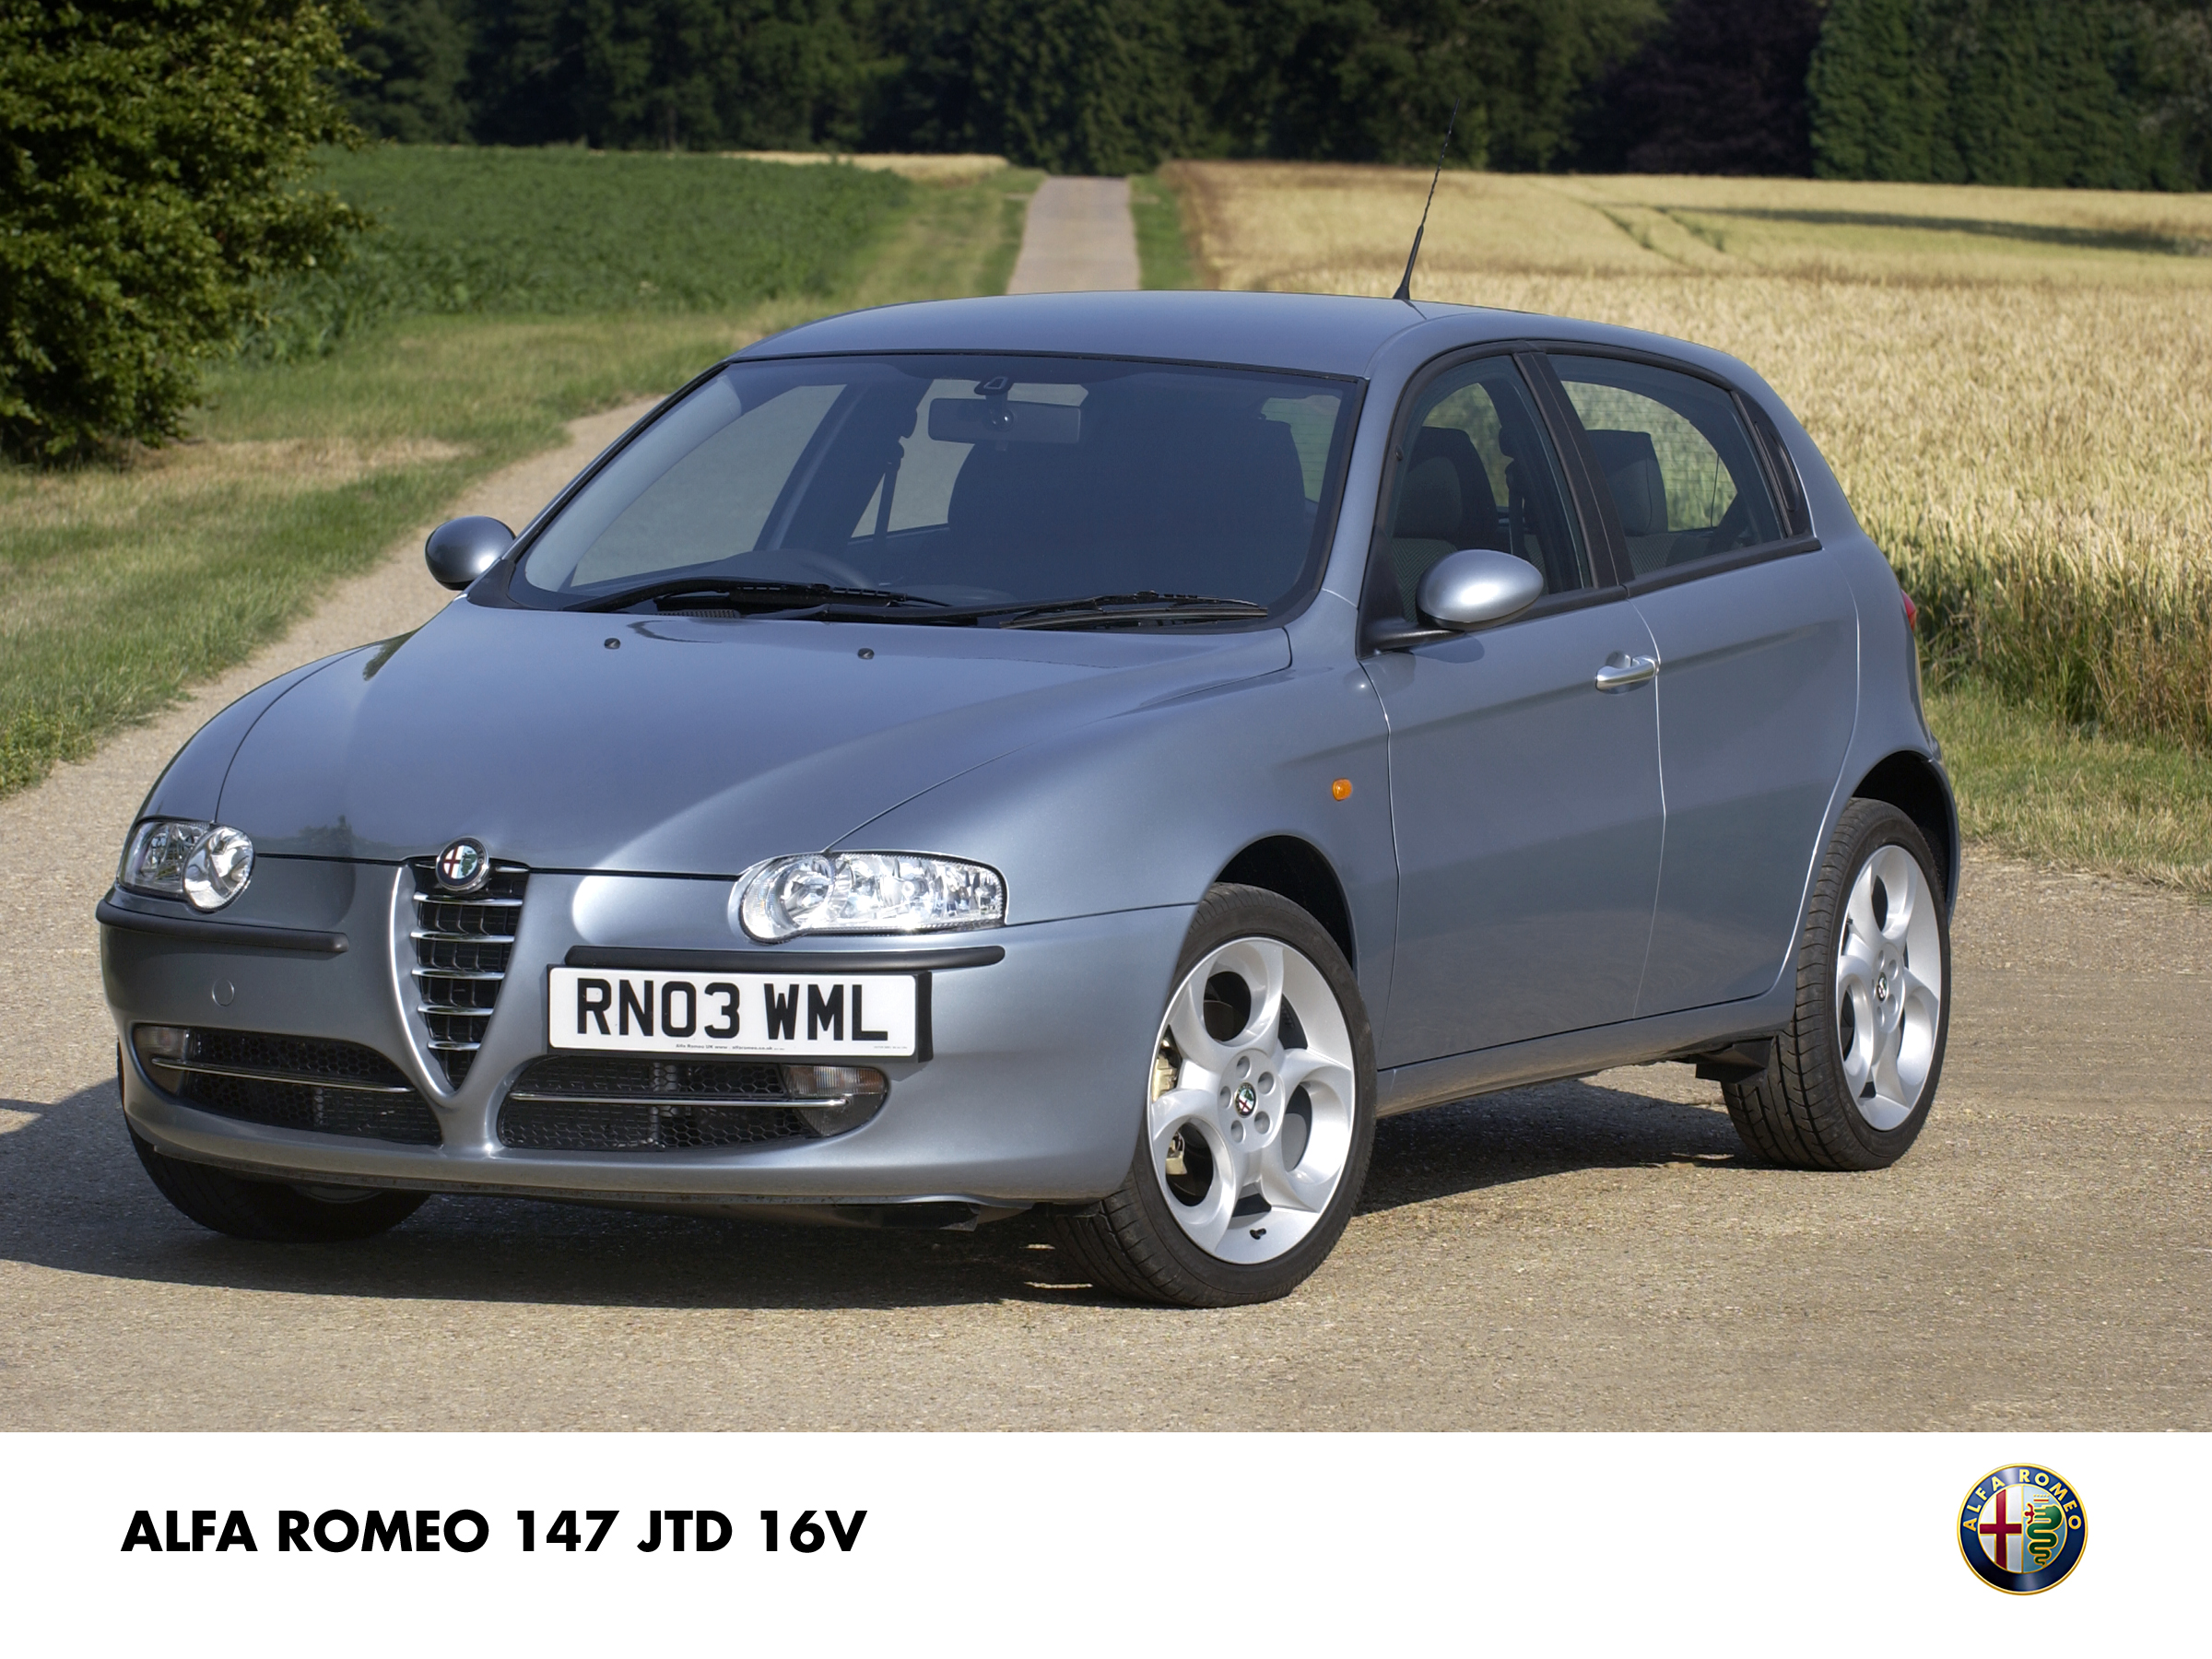 NEW PERFORMANCE DIESEL FOR ALFA 147 - Press - Fiat Group ...